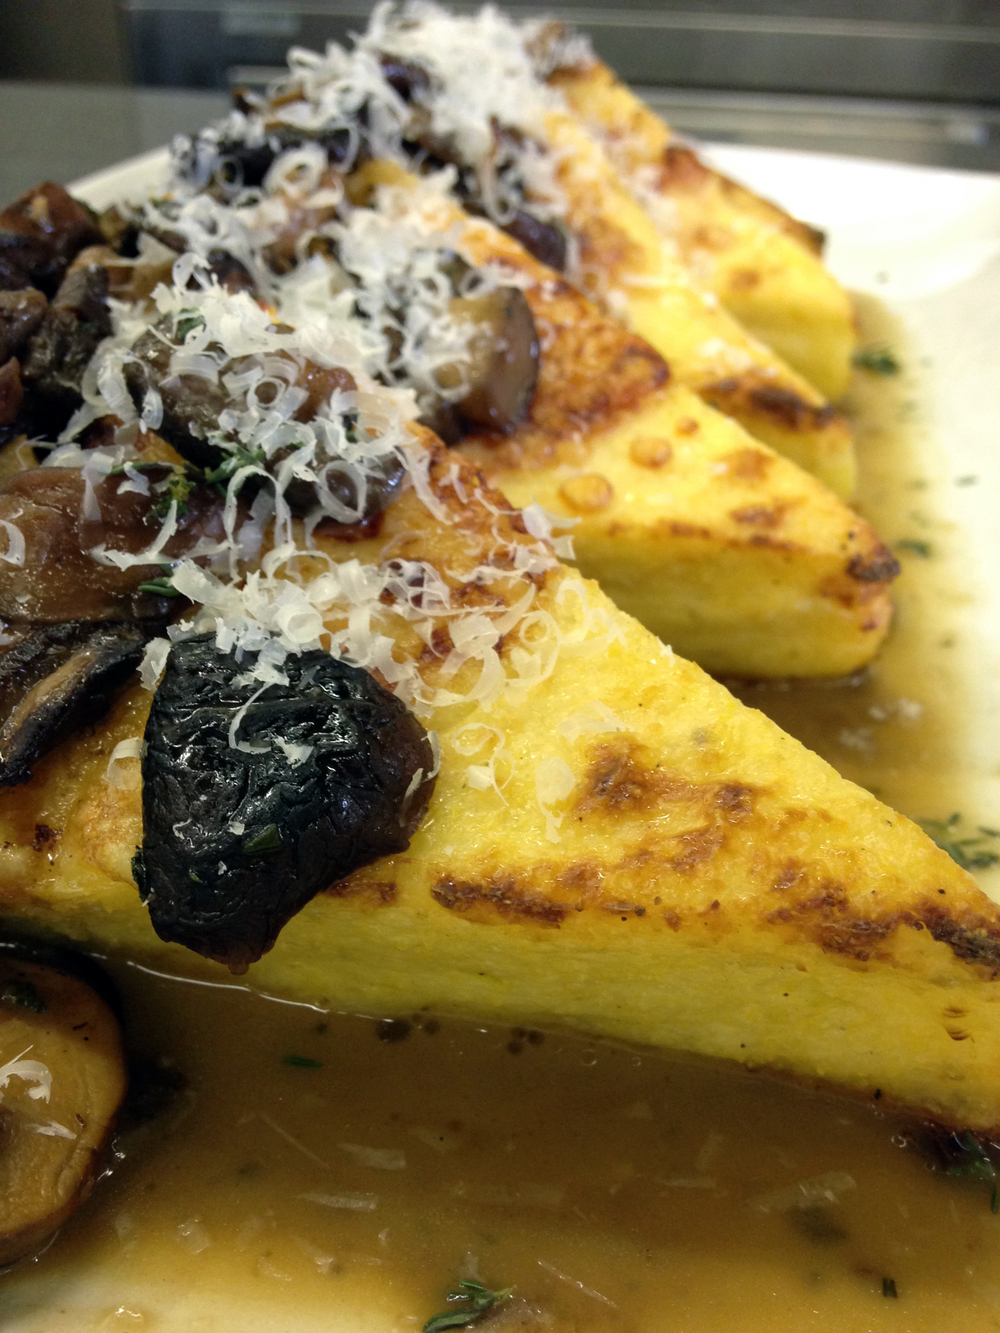 Chef Chris took our cooled polenta, cut it into triangles, topped with butter and Parmesanand baked it until golden. Then he added a savory mushroom sauce.